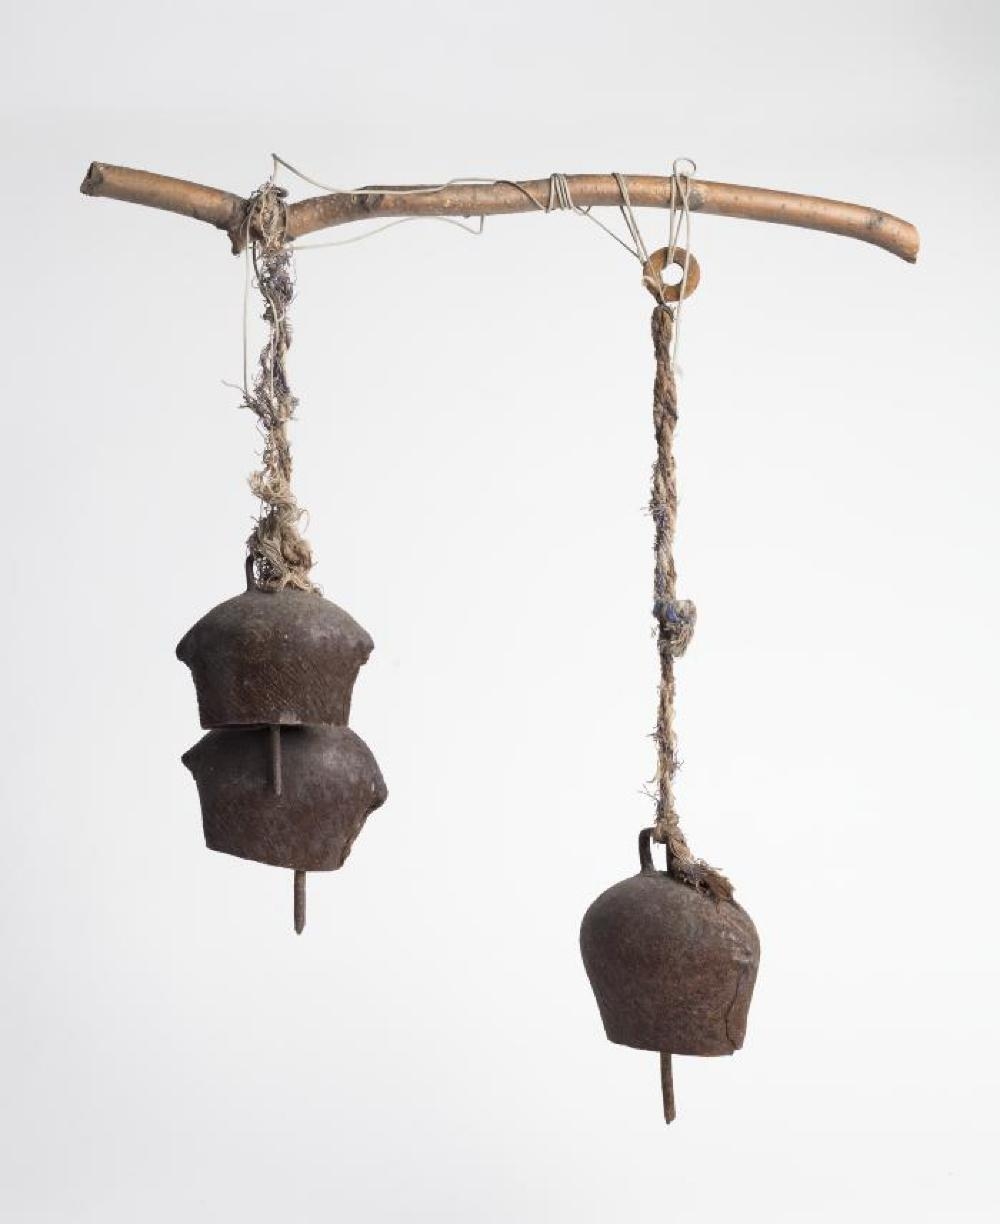 Hanging Bells; Metal, twine, wood; Collection of Isamu Noguchi. (Study Collection; Collectibles)